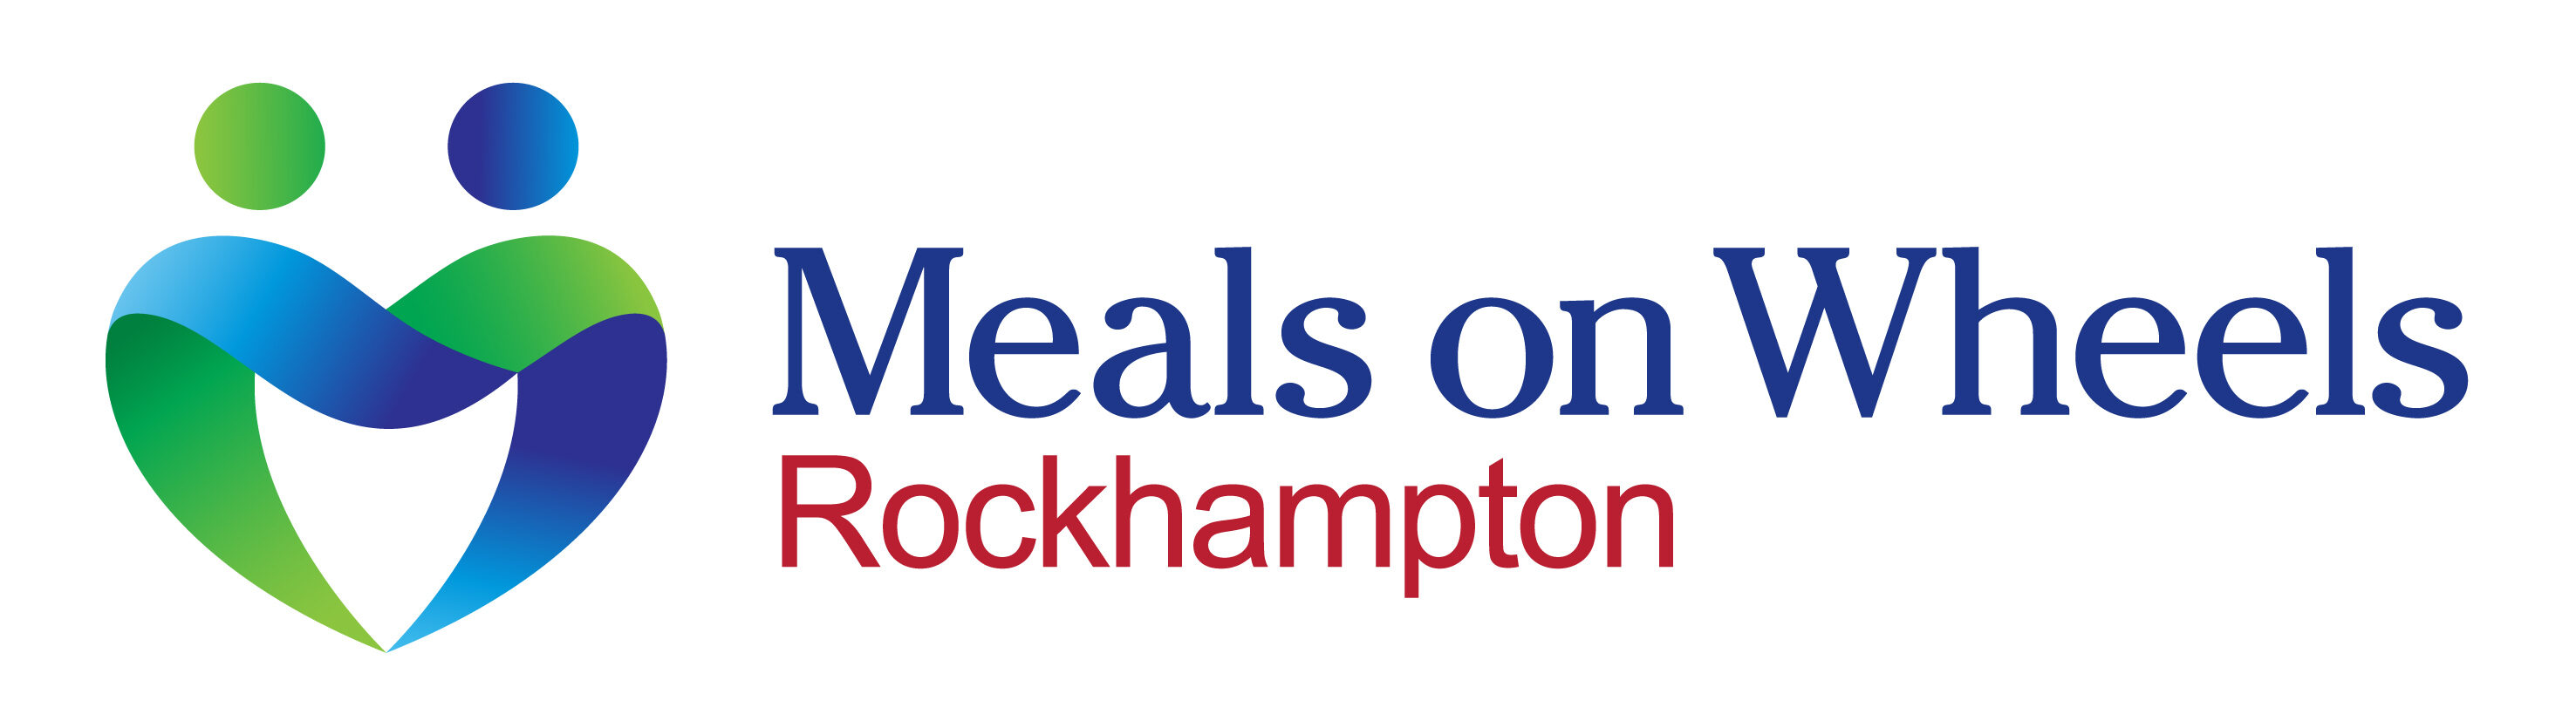 Welcome to Rockhampton Meals on Wheels